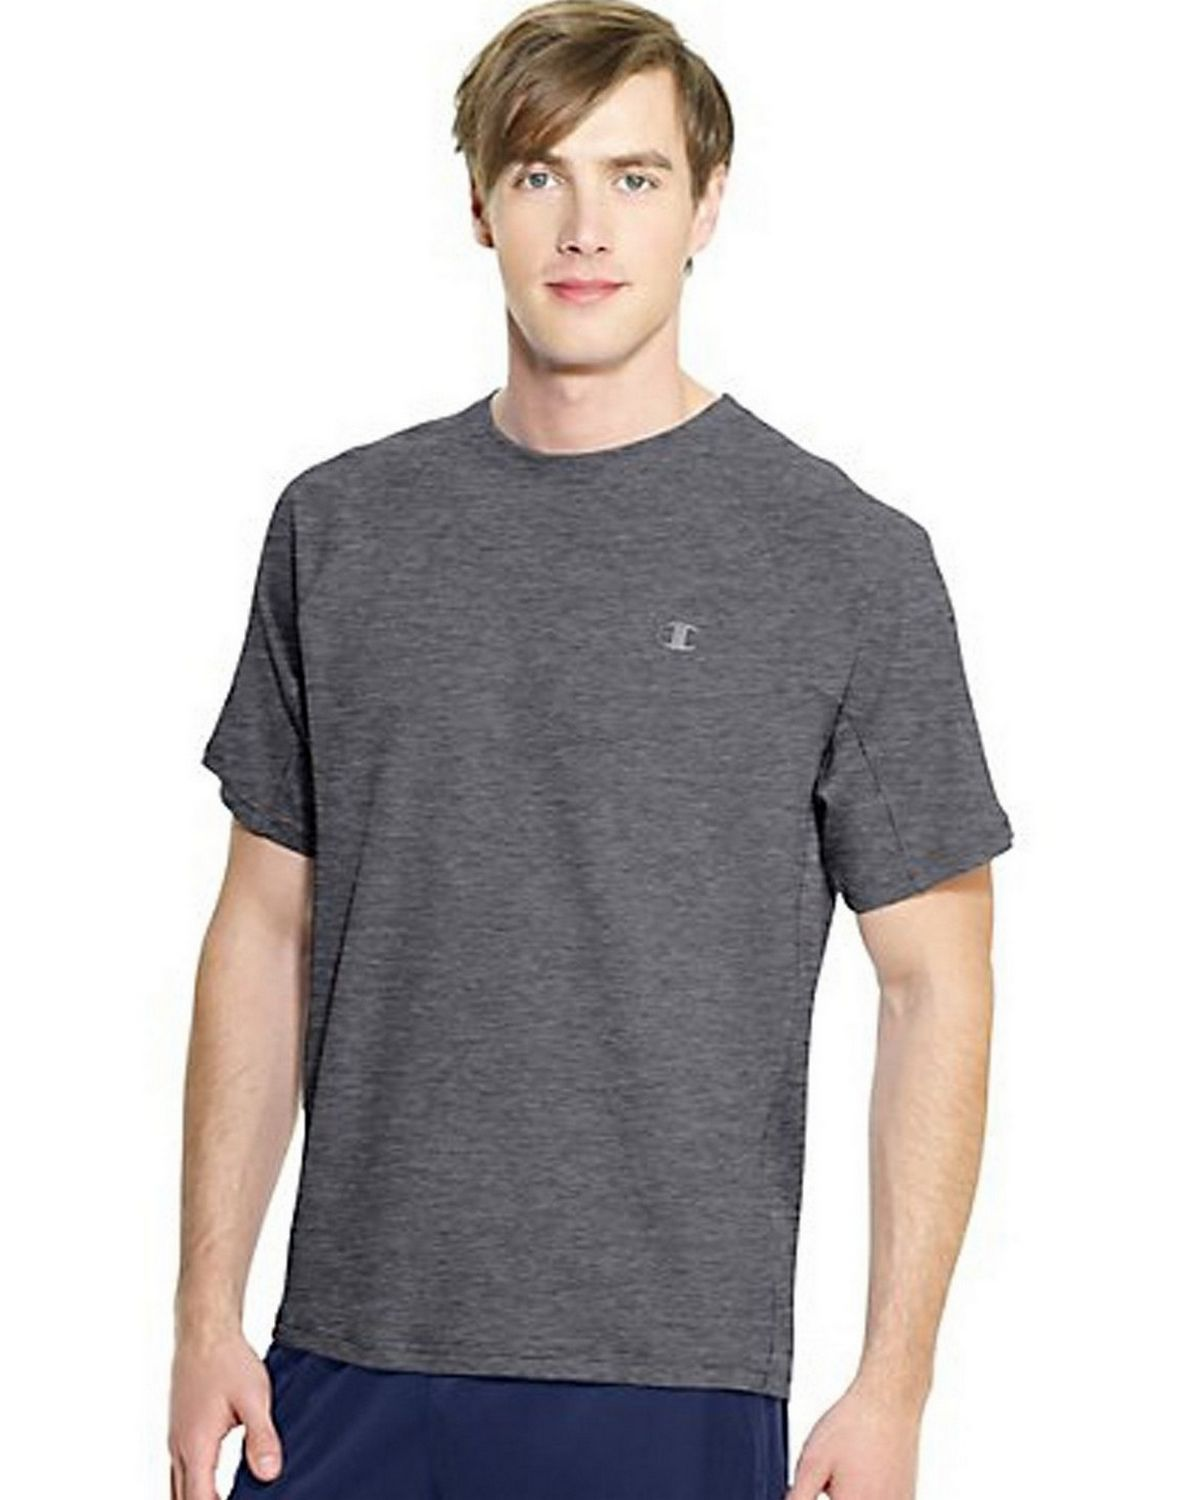 Champion T6608 Vapor PowerTrain Colorblock Tee - Oxford Grey/Granite Heather - XXL T6608